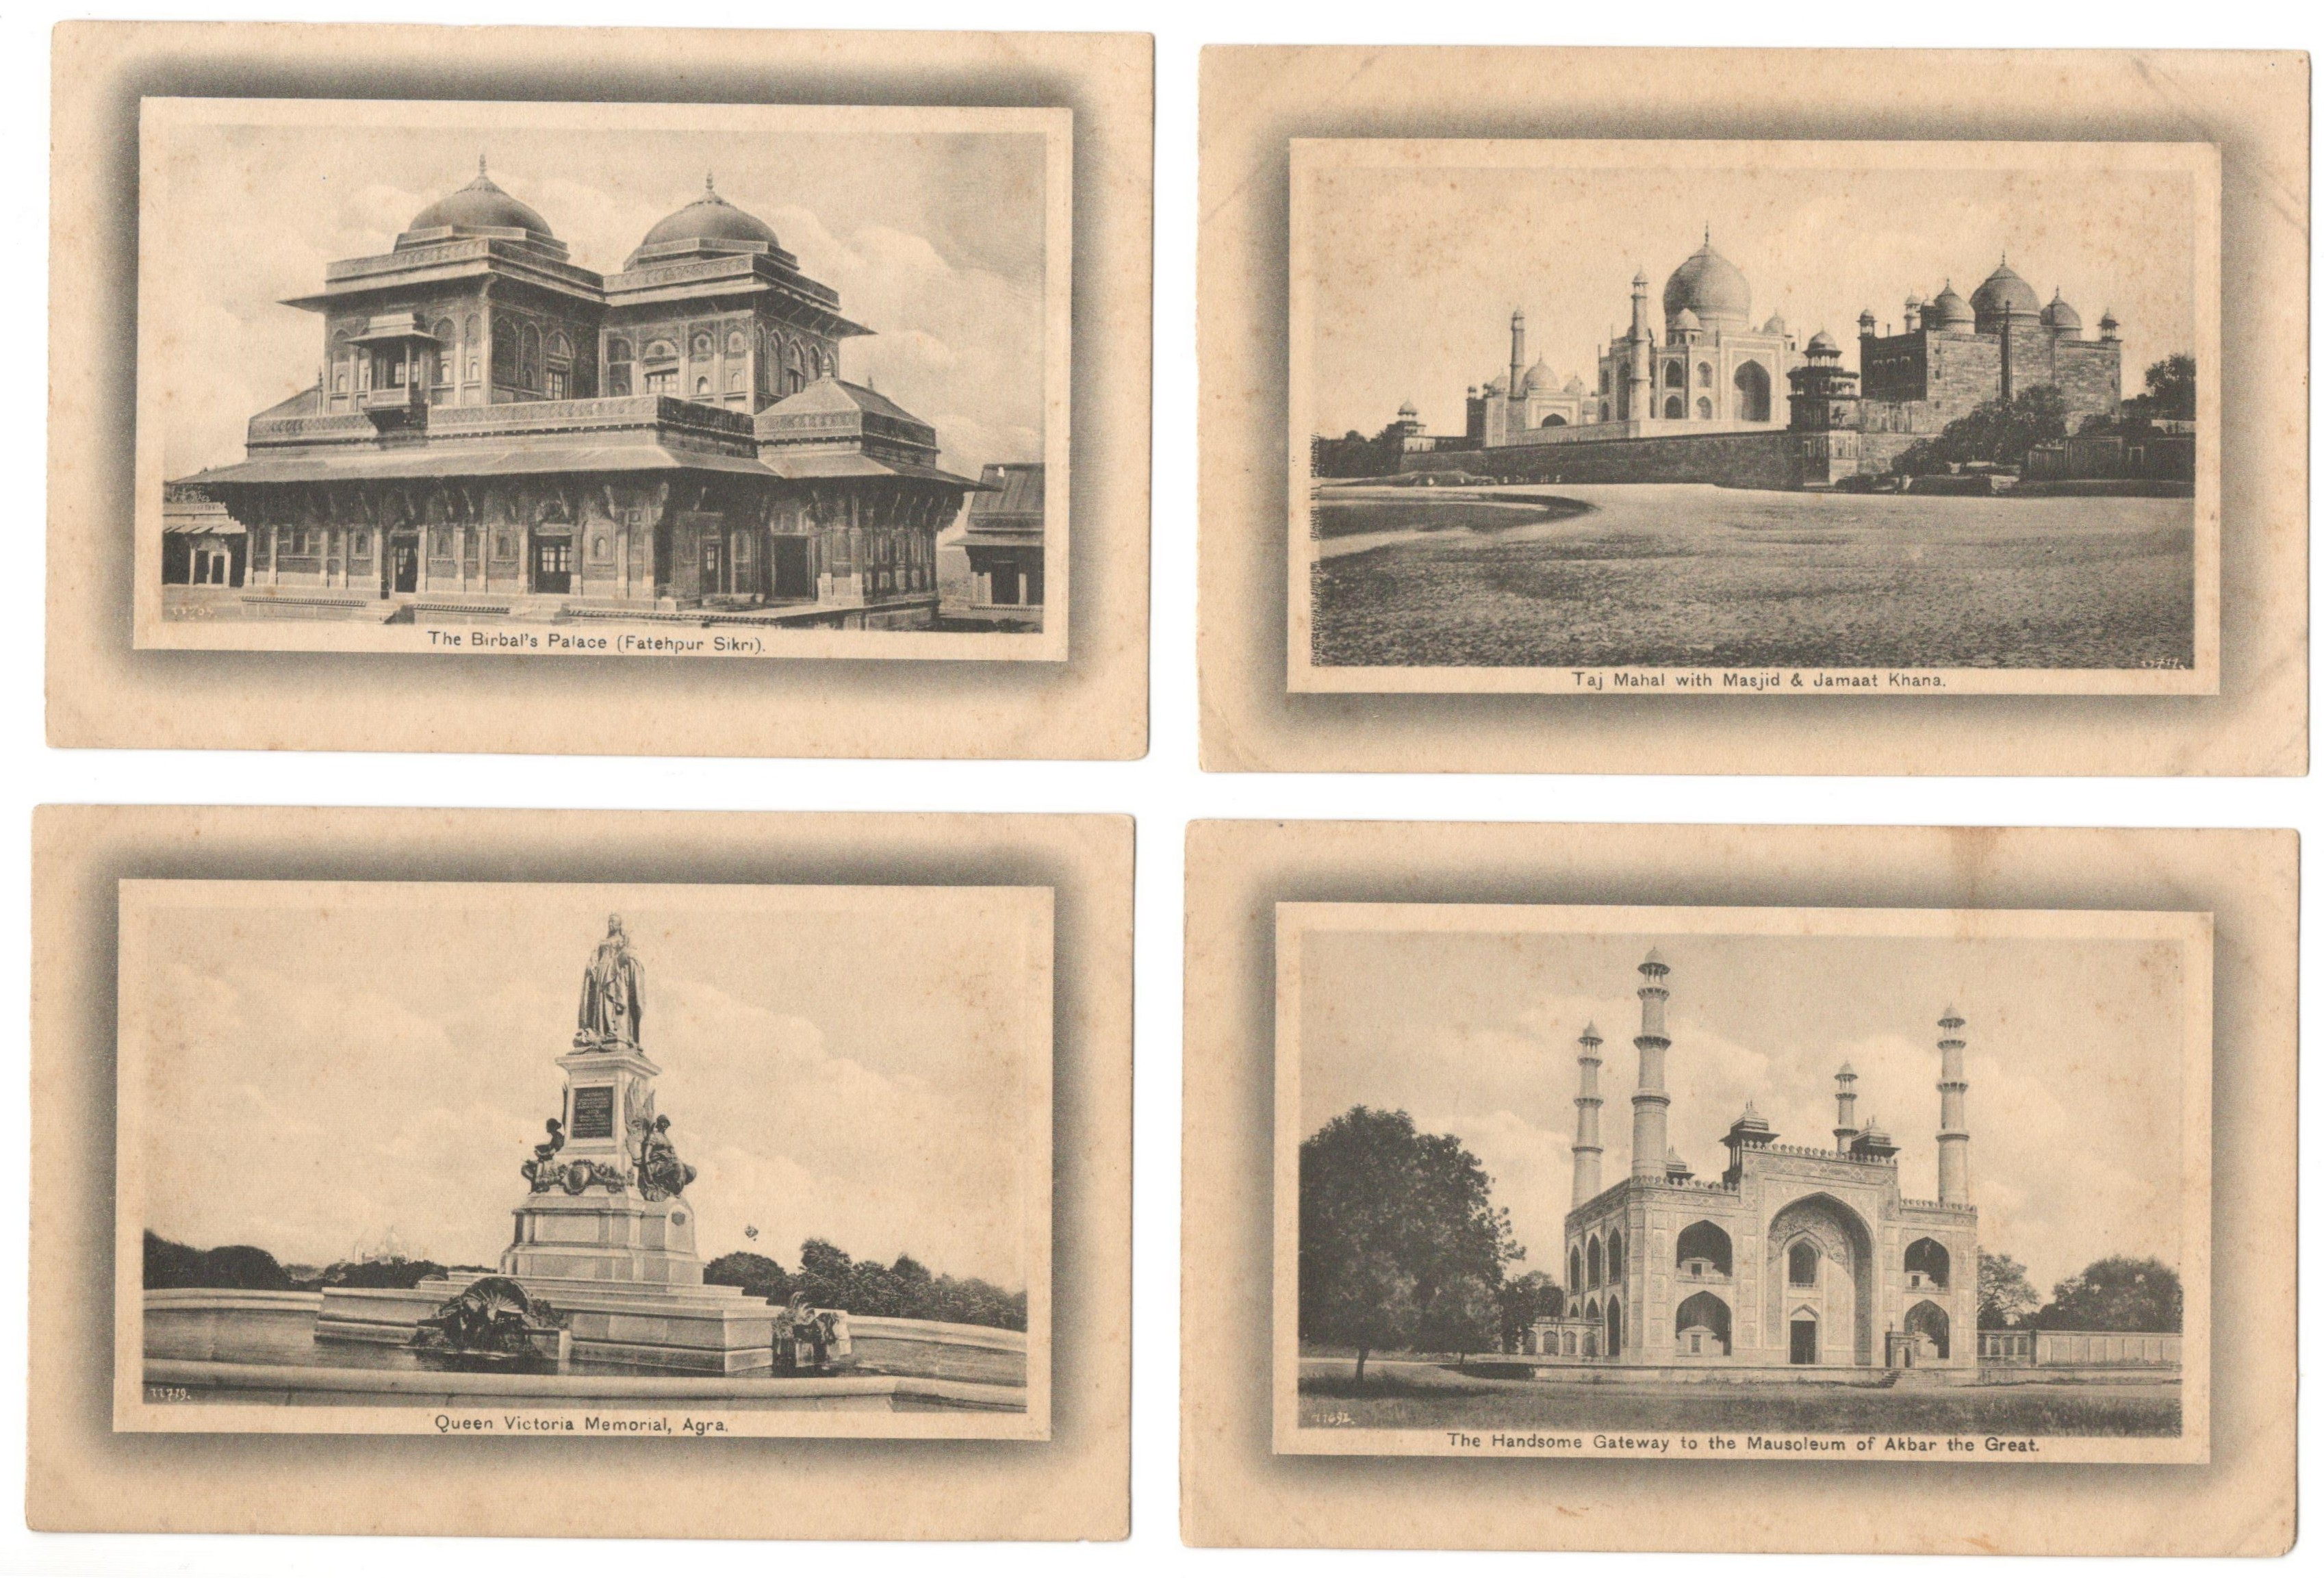 H.A. MIRZA & SONS DELHI - POSTCARDS OF INDIA (20) PRINTED IN SAXONY